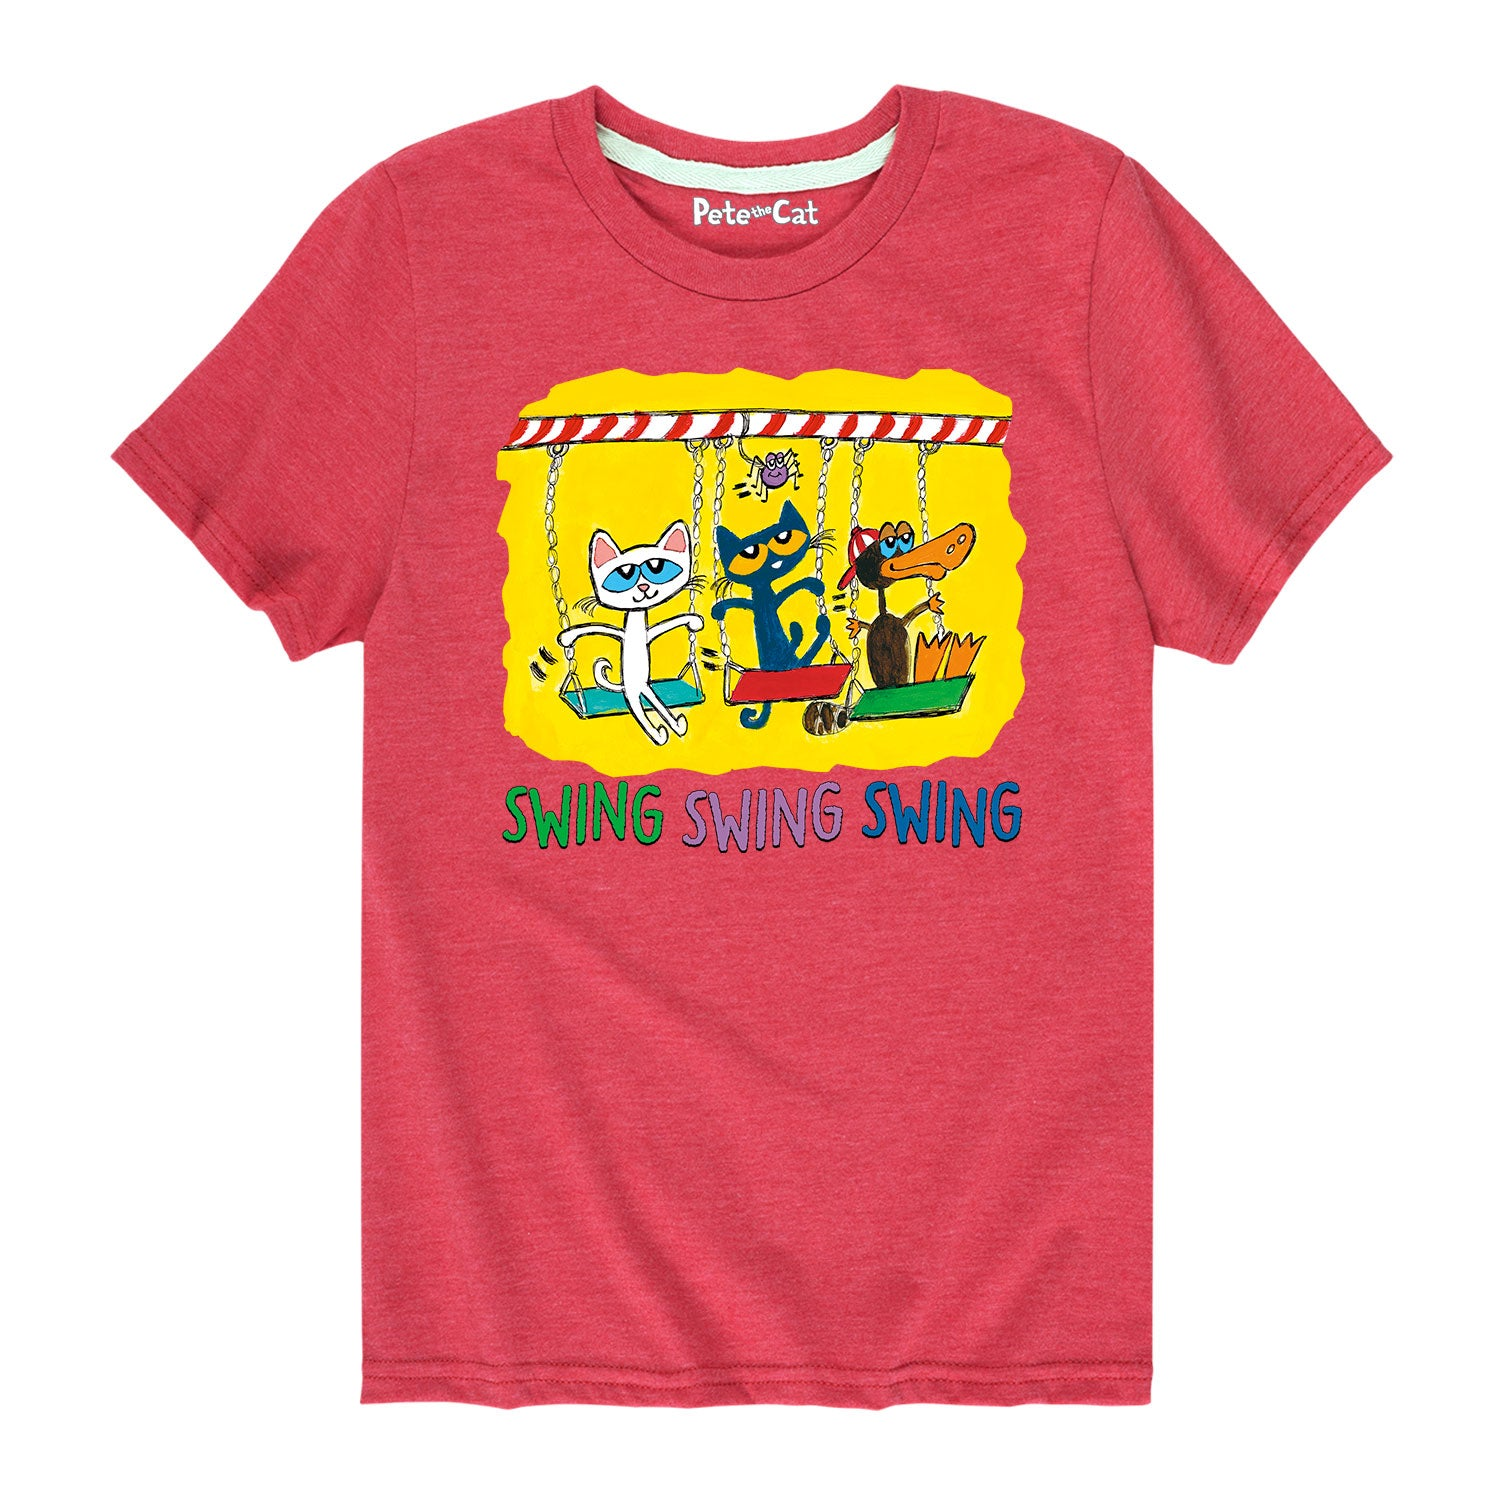 Swing Time - Youth & Toddler Short Sleeve T-Shirt